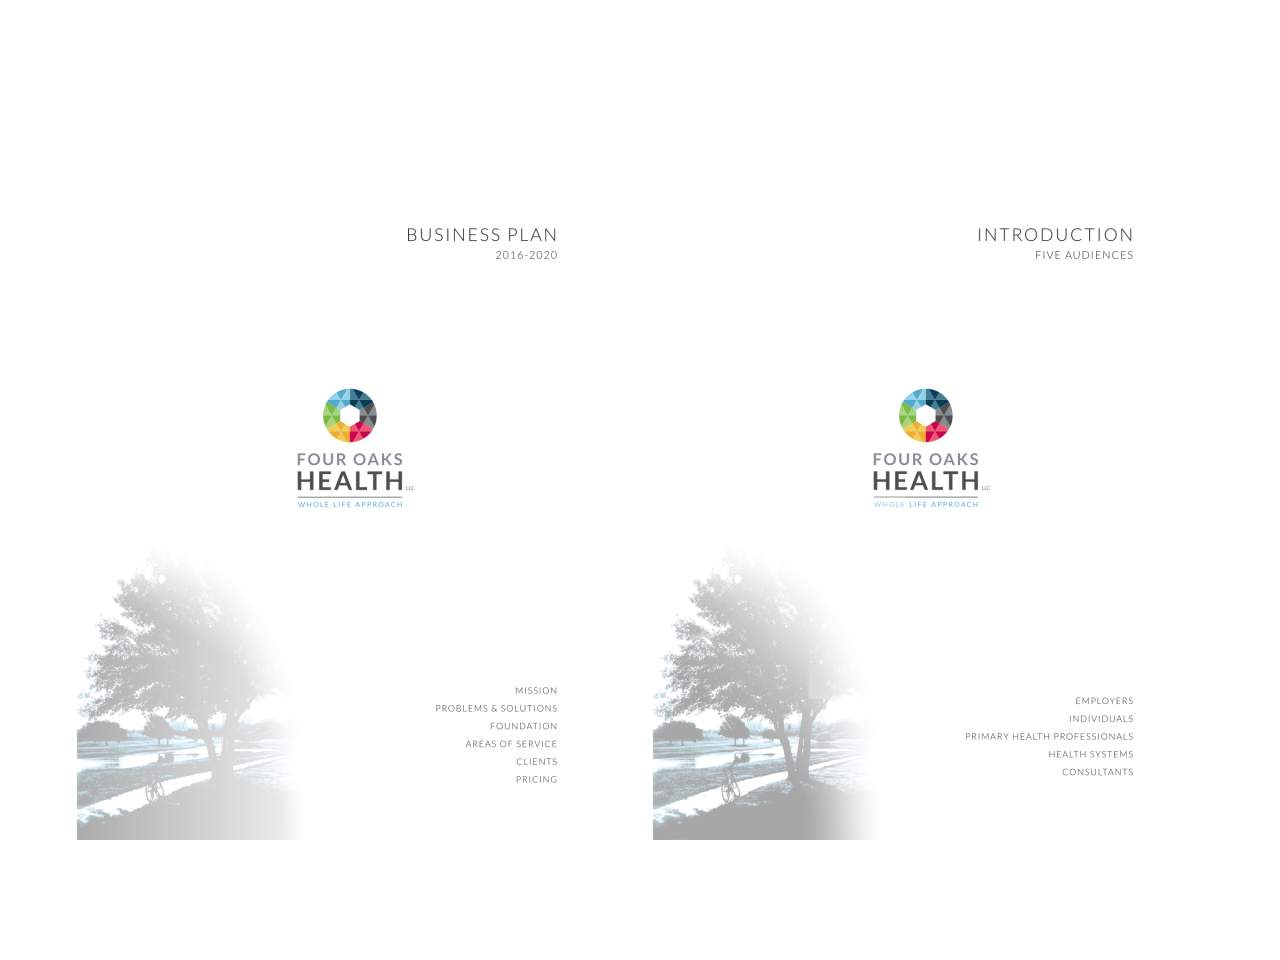 Four Oaks Health Brand D